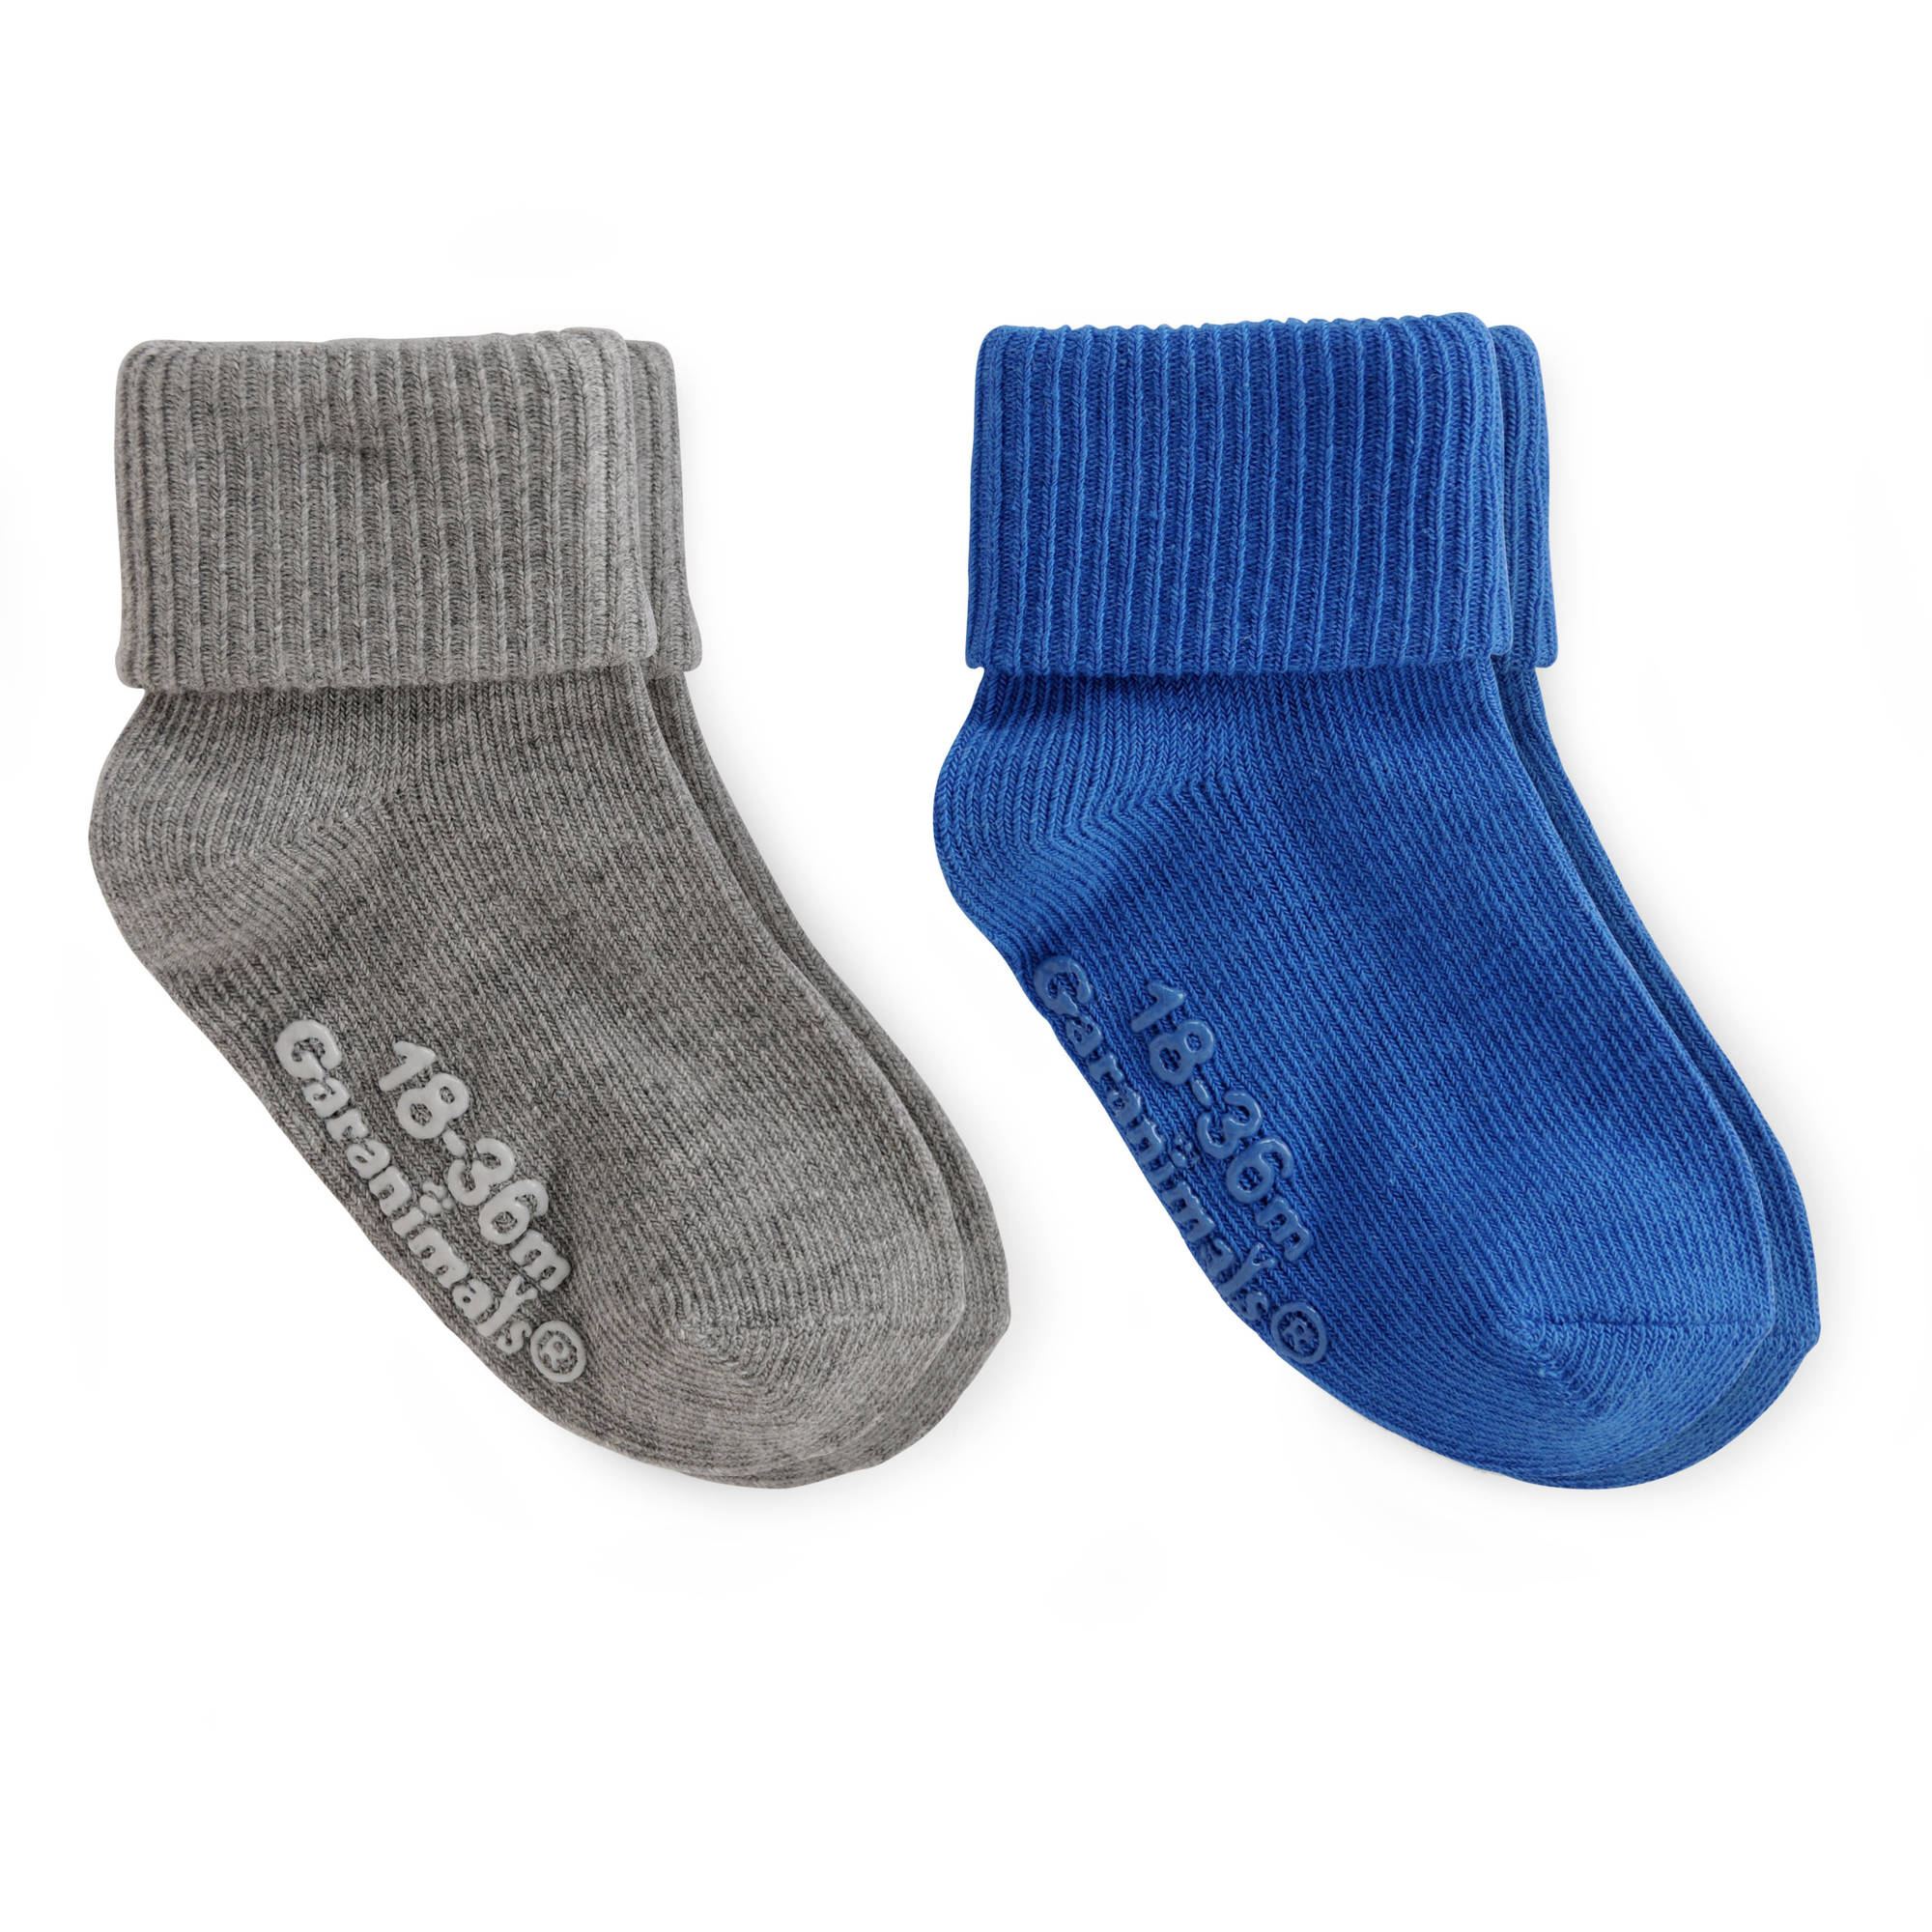 Garanimals Baby Toddler Boy Grey Blue Gripper Socks Ages NB-5T, 2-Pack